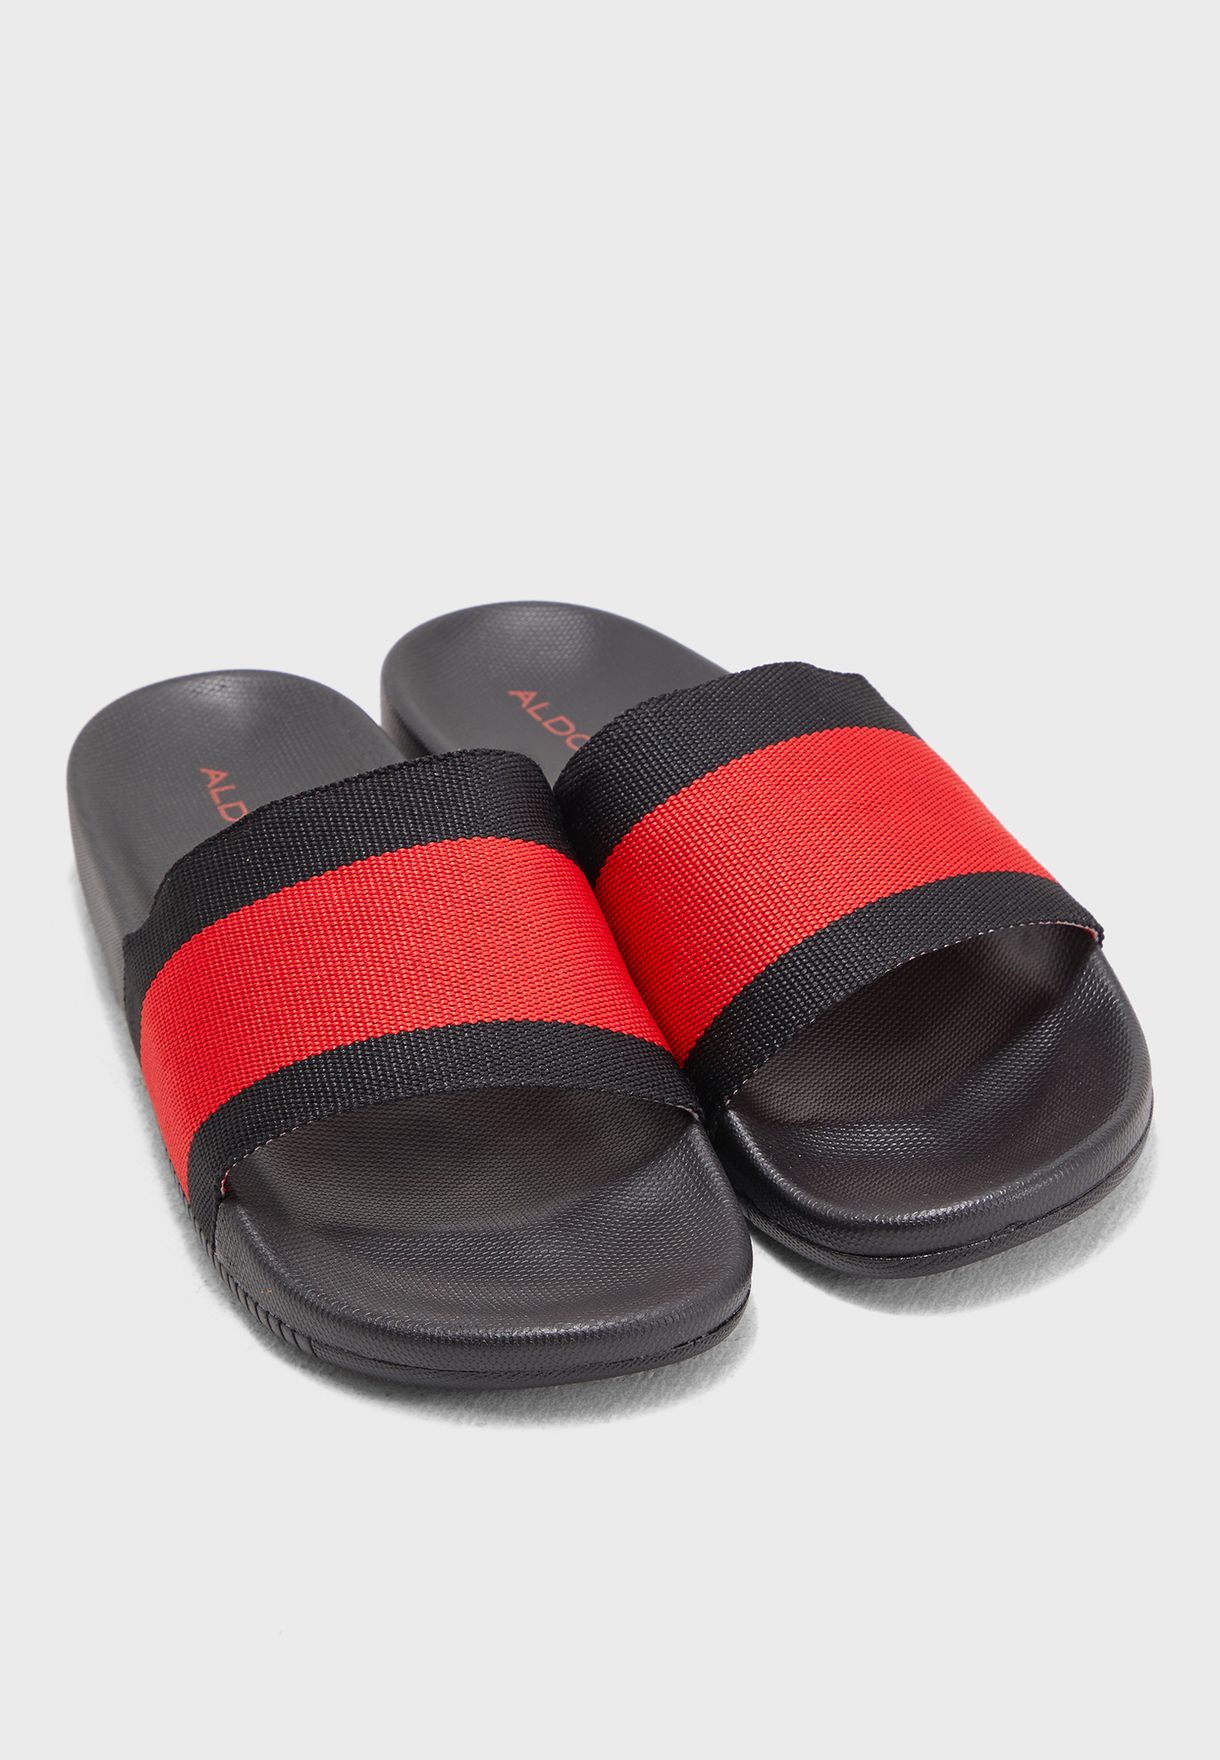 4ab57d43f308 Shop Aldo multicolor Ulzia Slides ULZIA96 for Men in Oman - 17704SH93NCP